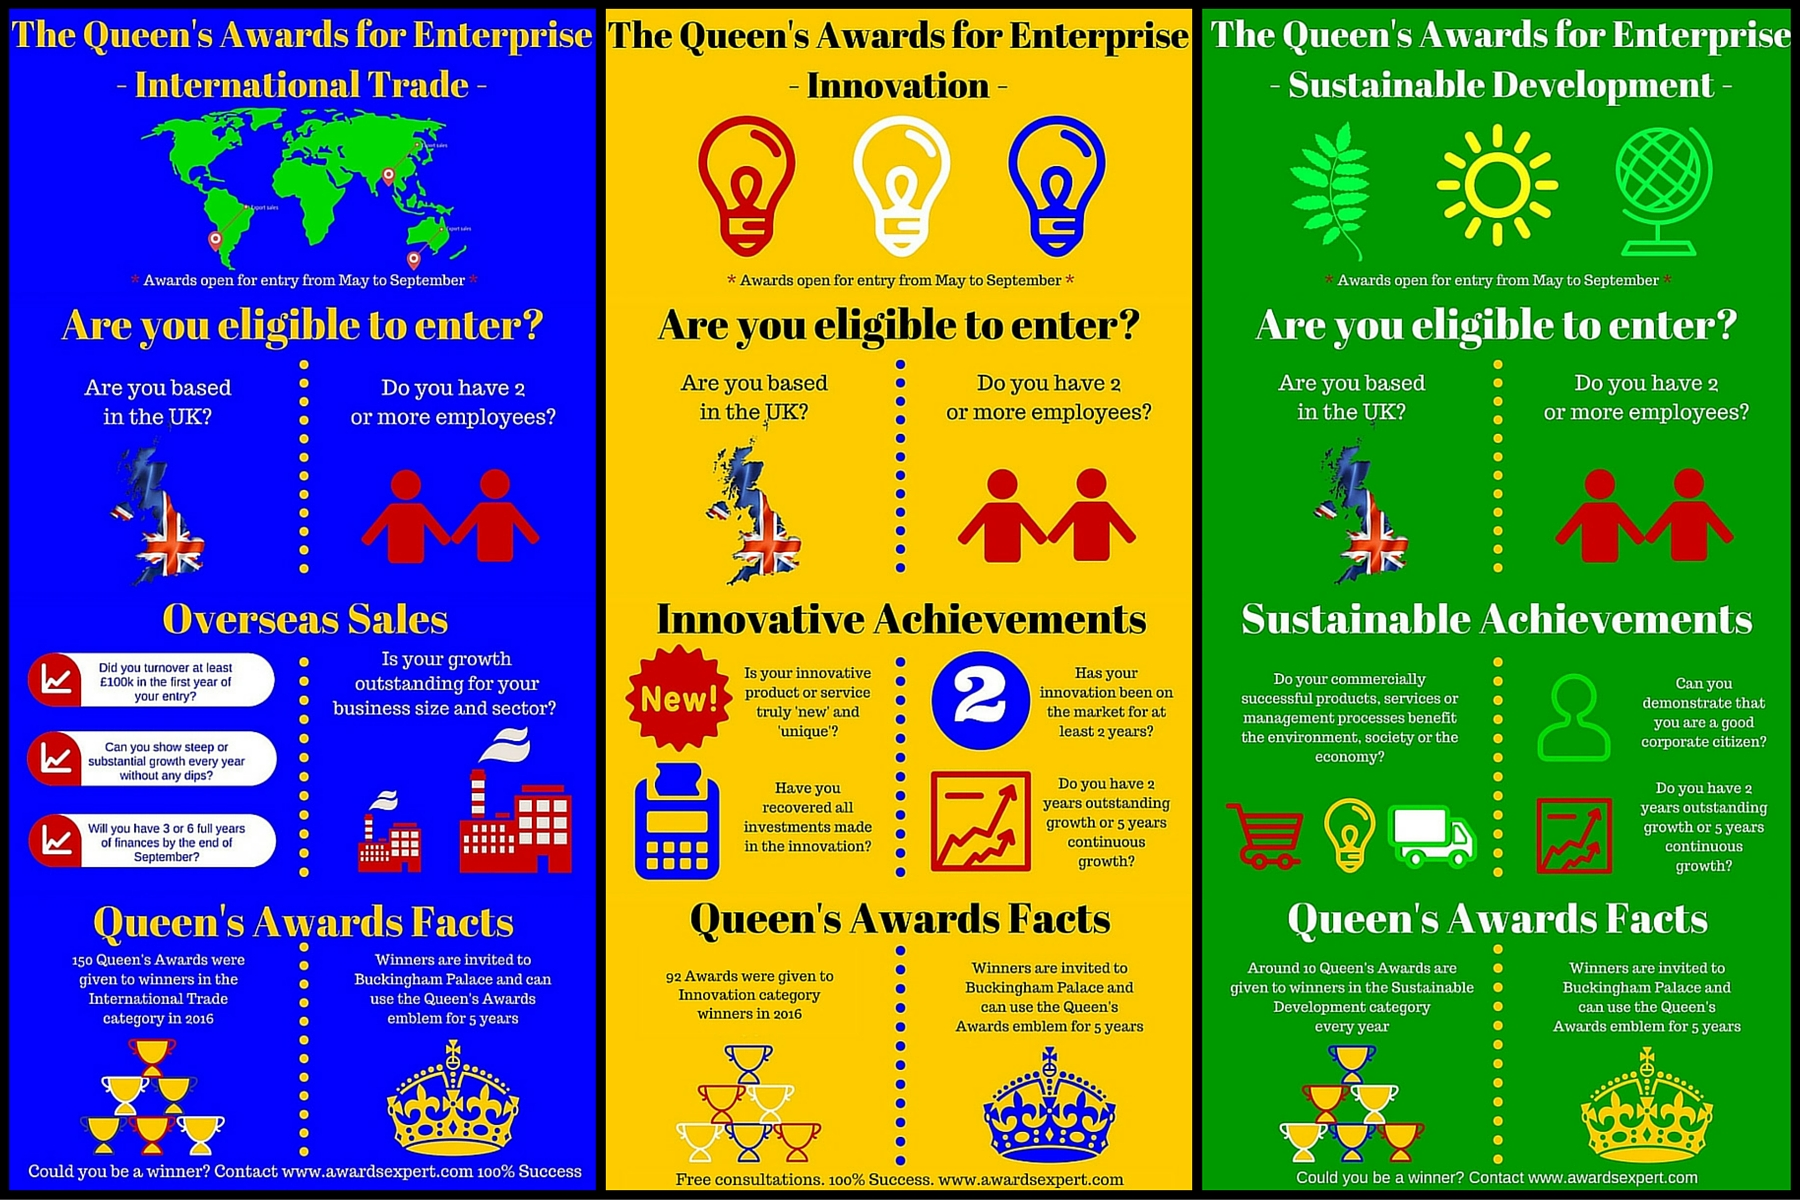 queens-awards-for-enterprise-all-categories-infographic